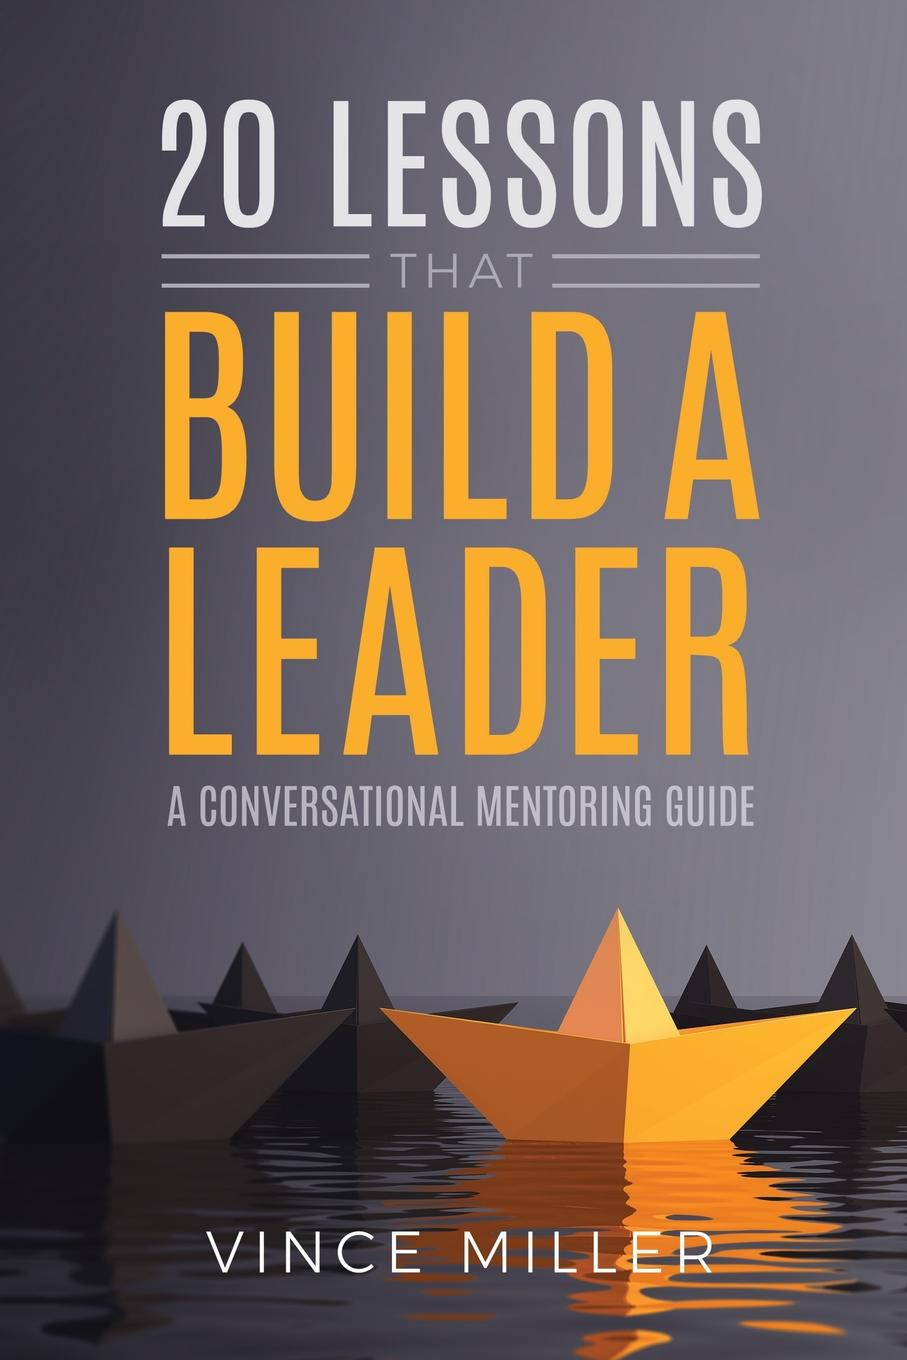 Vince Miller 20 Lessons that Build a Leader. A Conversational Mentoring Guide amy lyman the trustworthy leader leveraging the power of trust to transform your organization